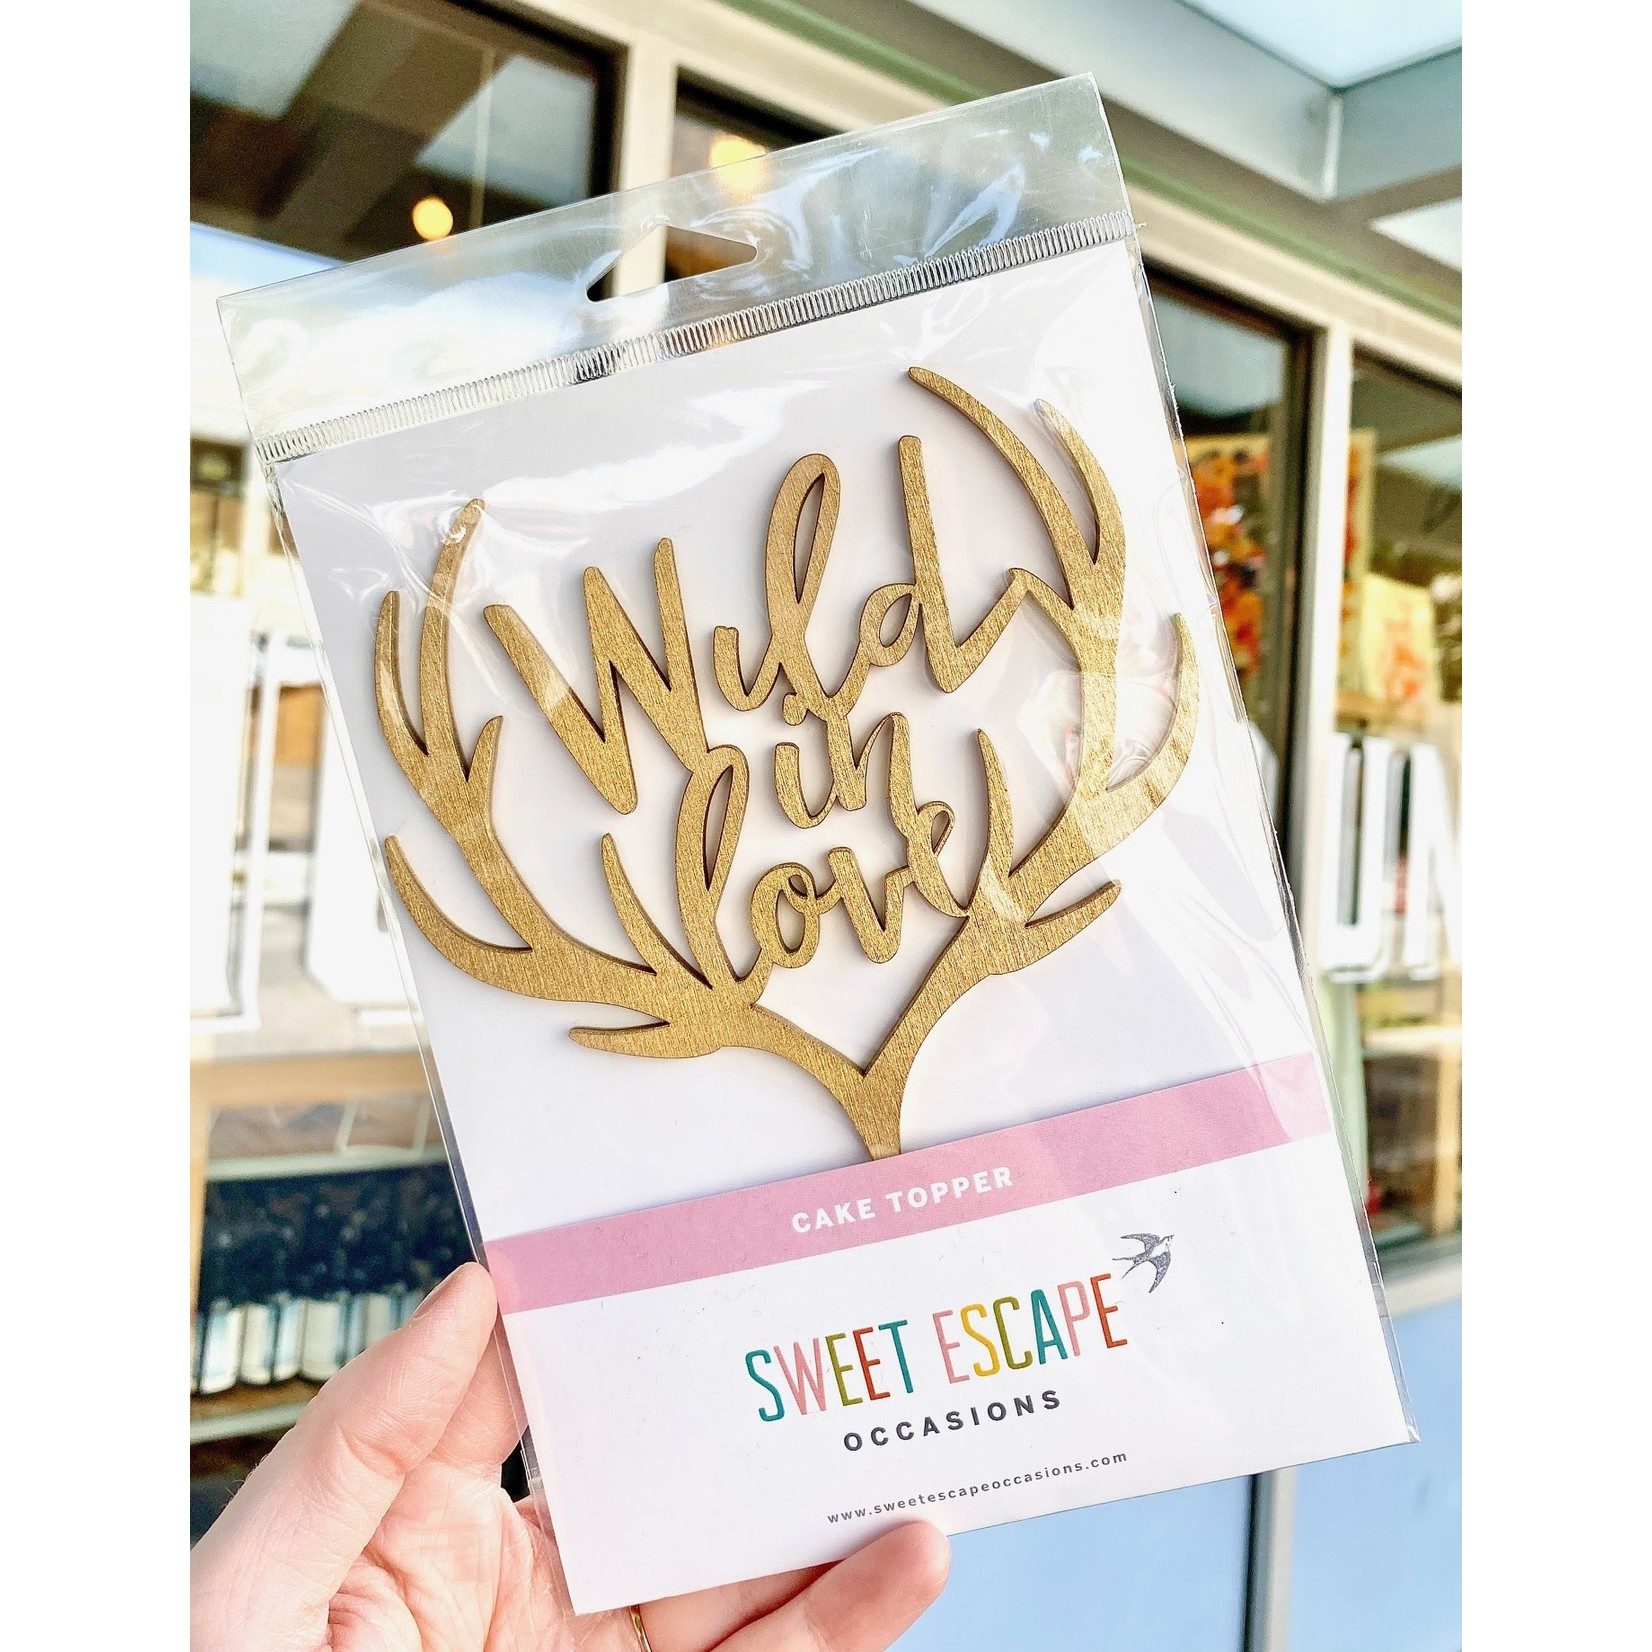 Sweet Escape Occasions Gold-Painted Wood Cake Toppers